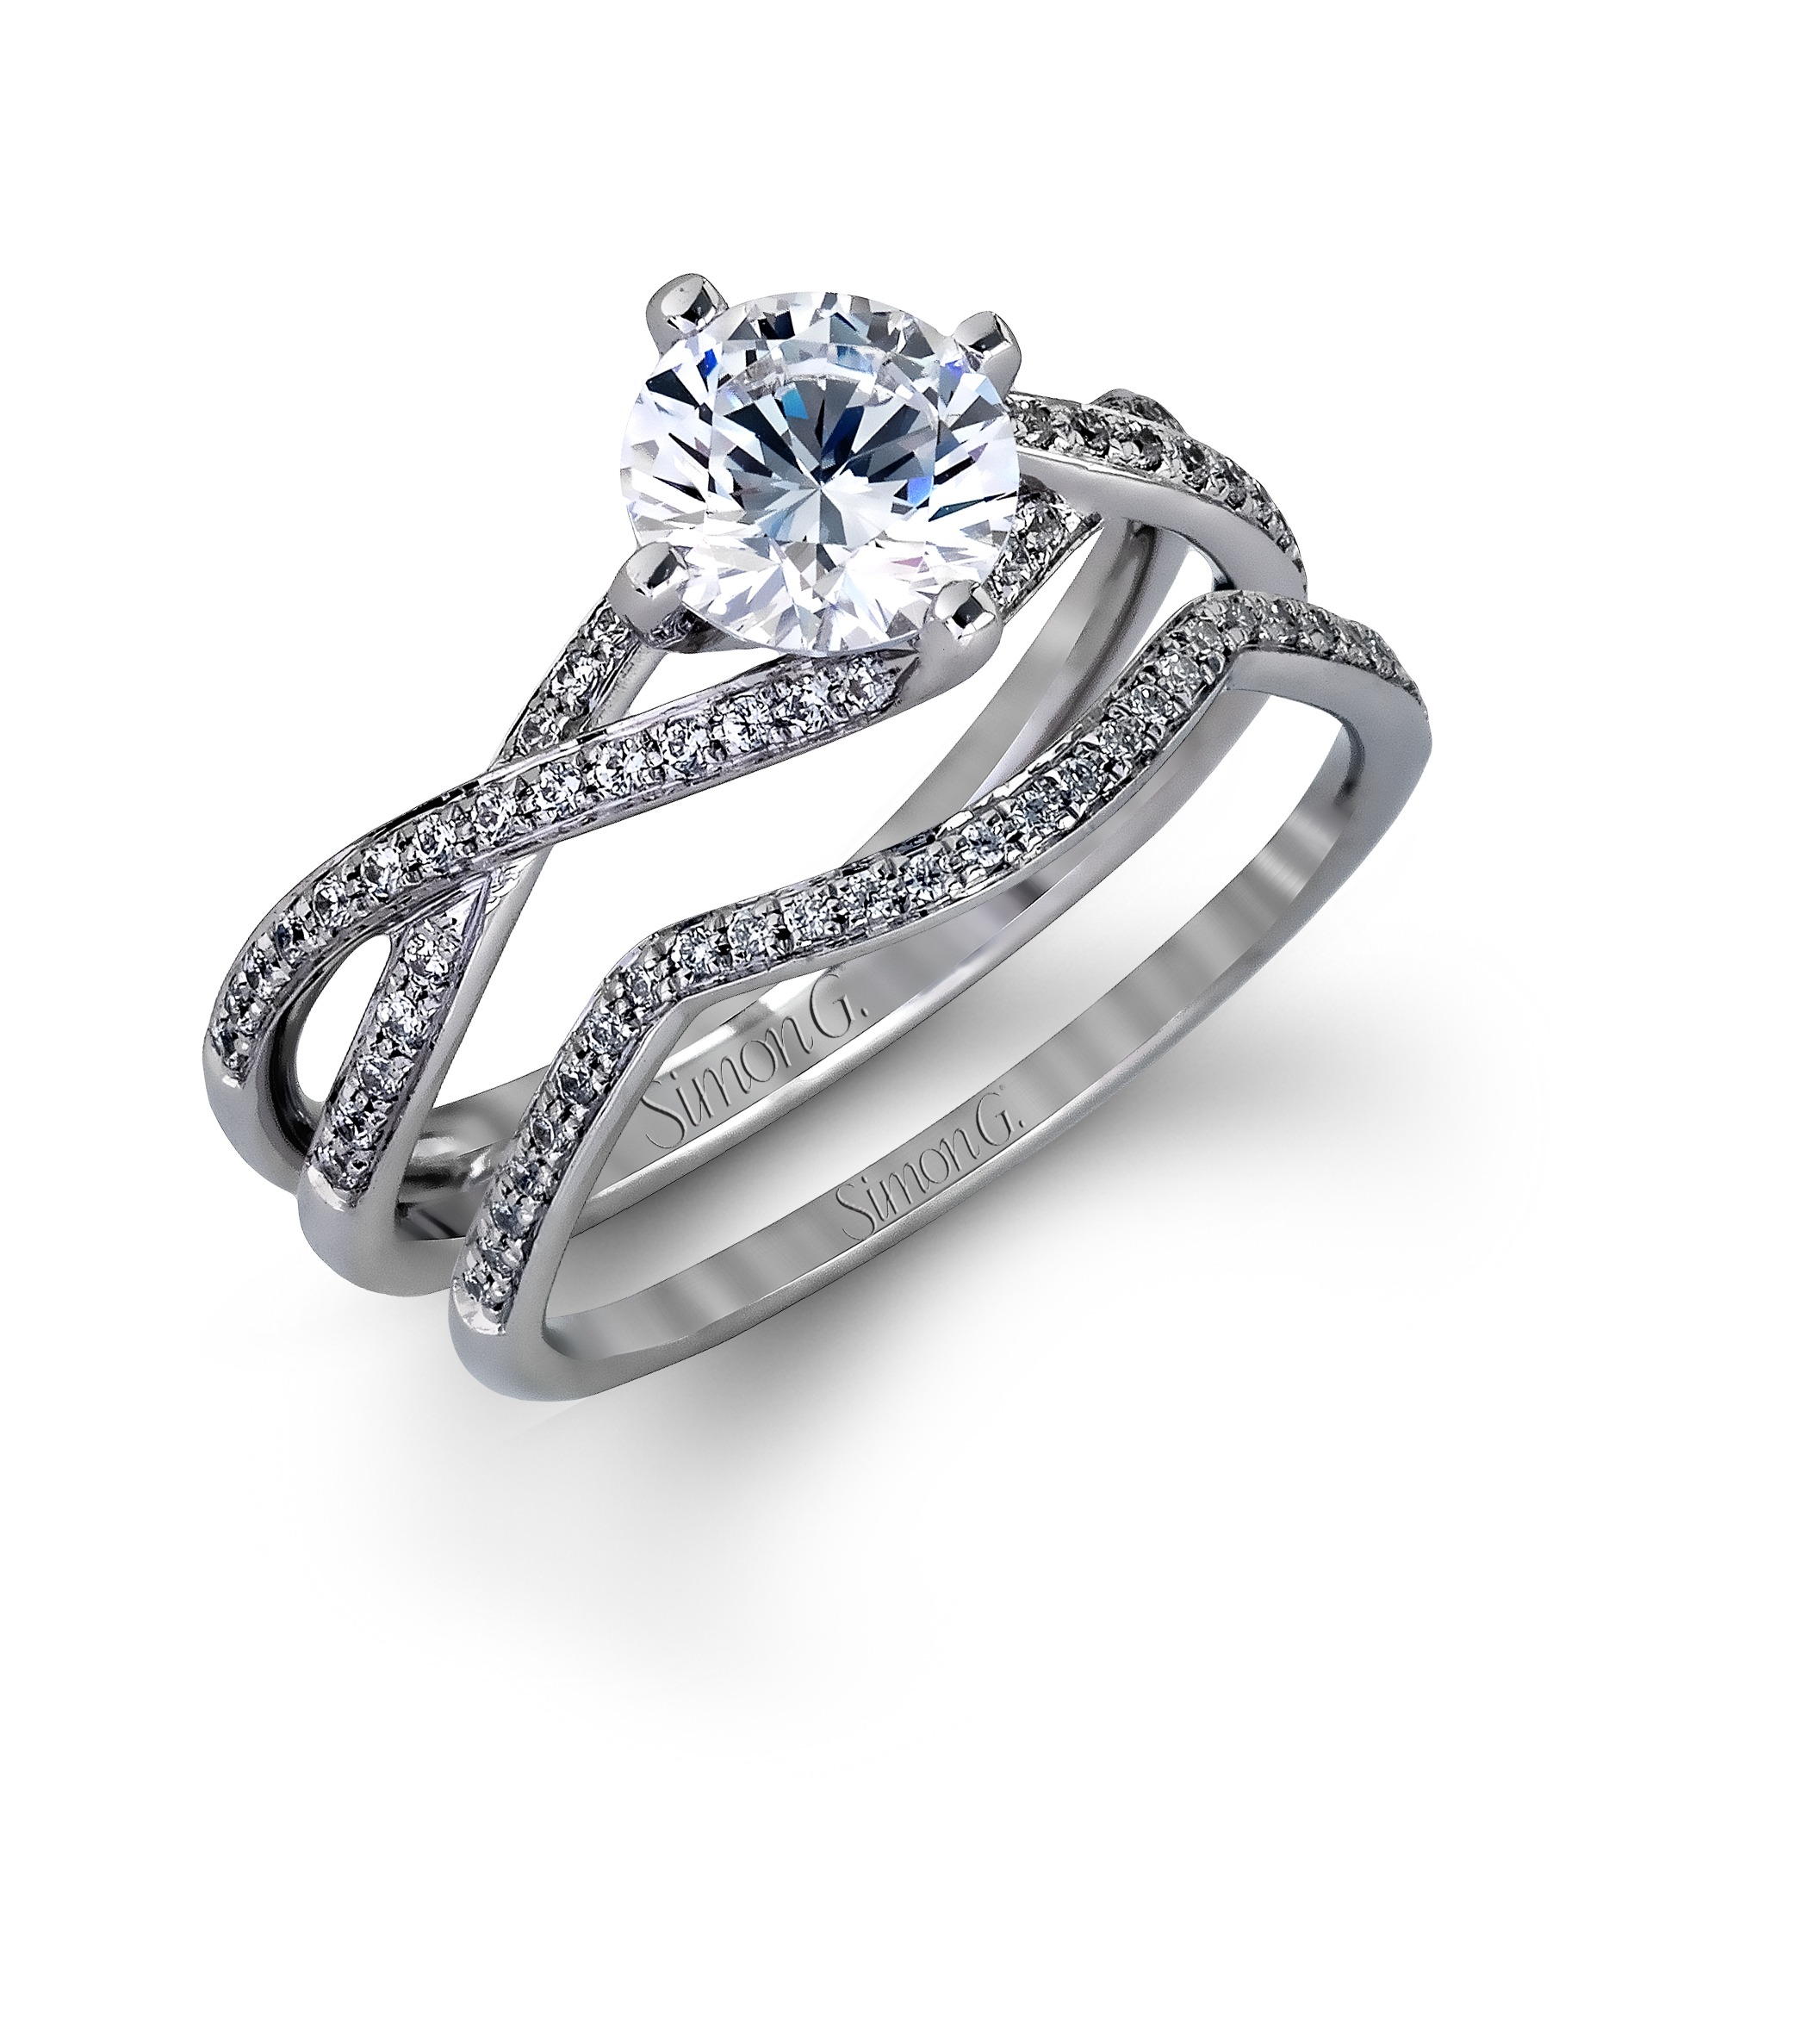 ring products with engagement simon g sapphires mount semi rings